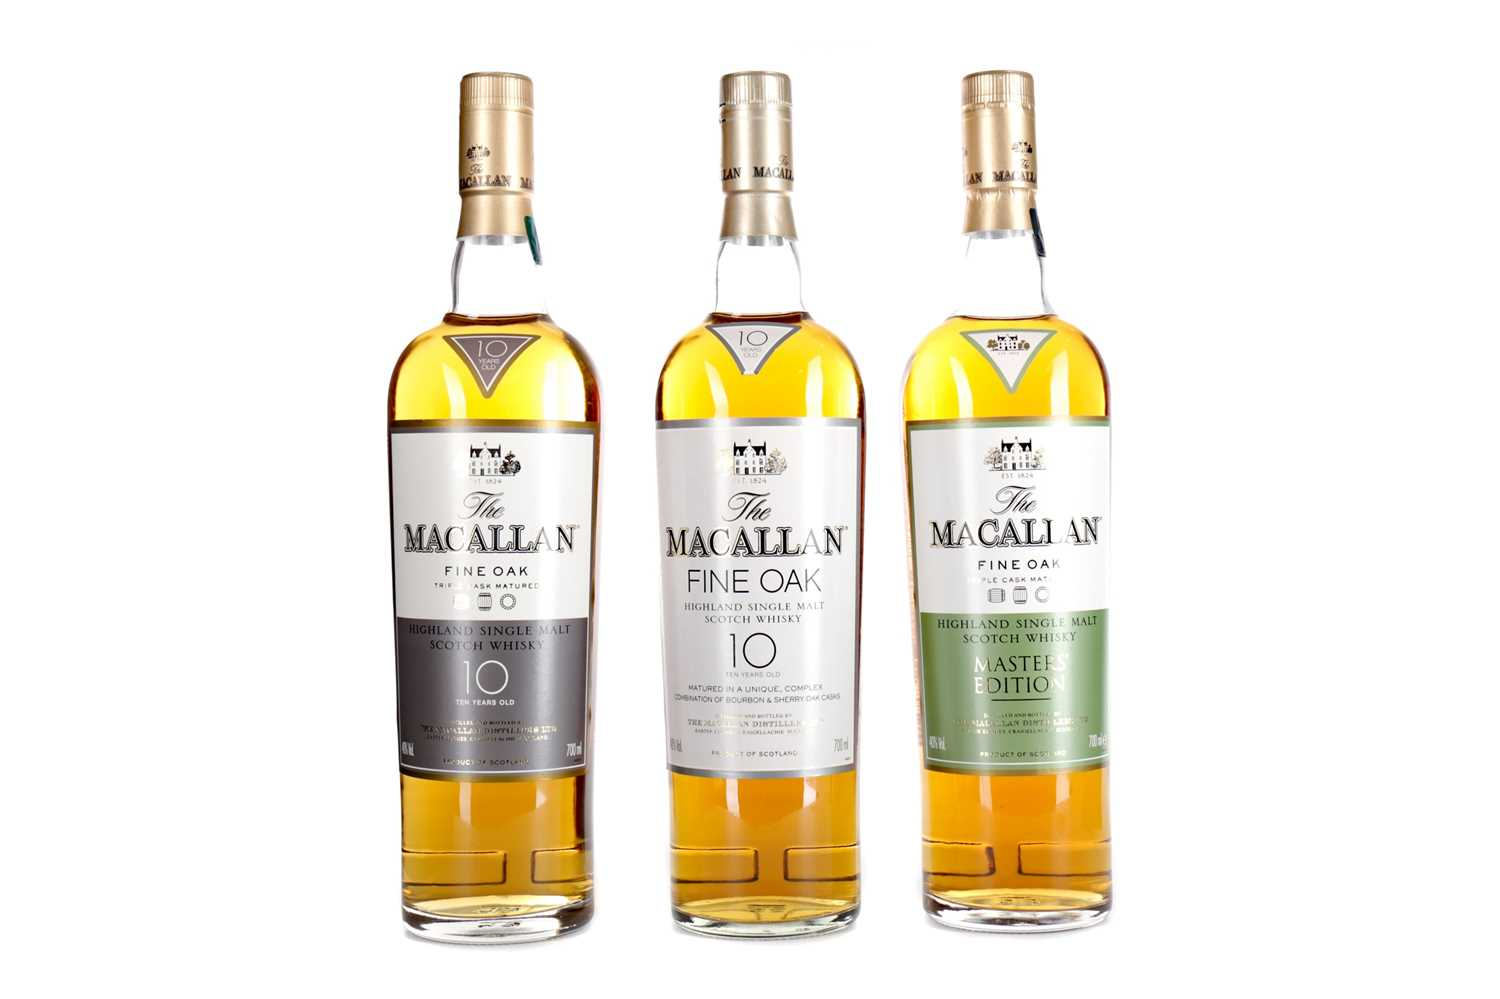 Lot 191 - TWO MACALLAN FINE OAK 10 YEARS OLD AND ONE MASTERS' EDITION